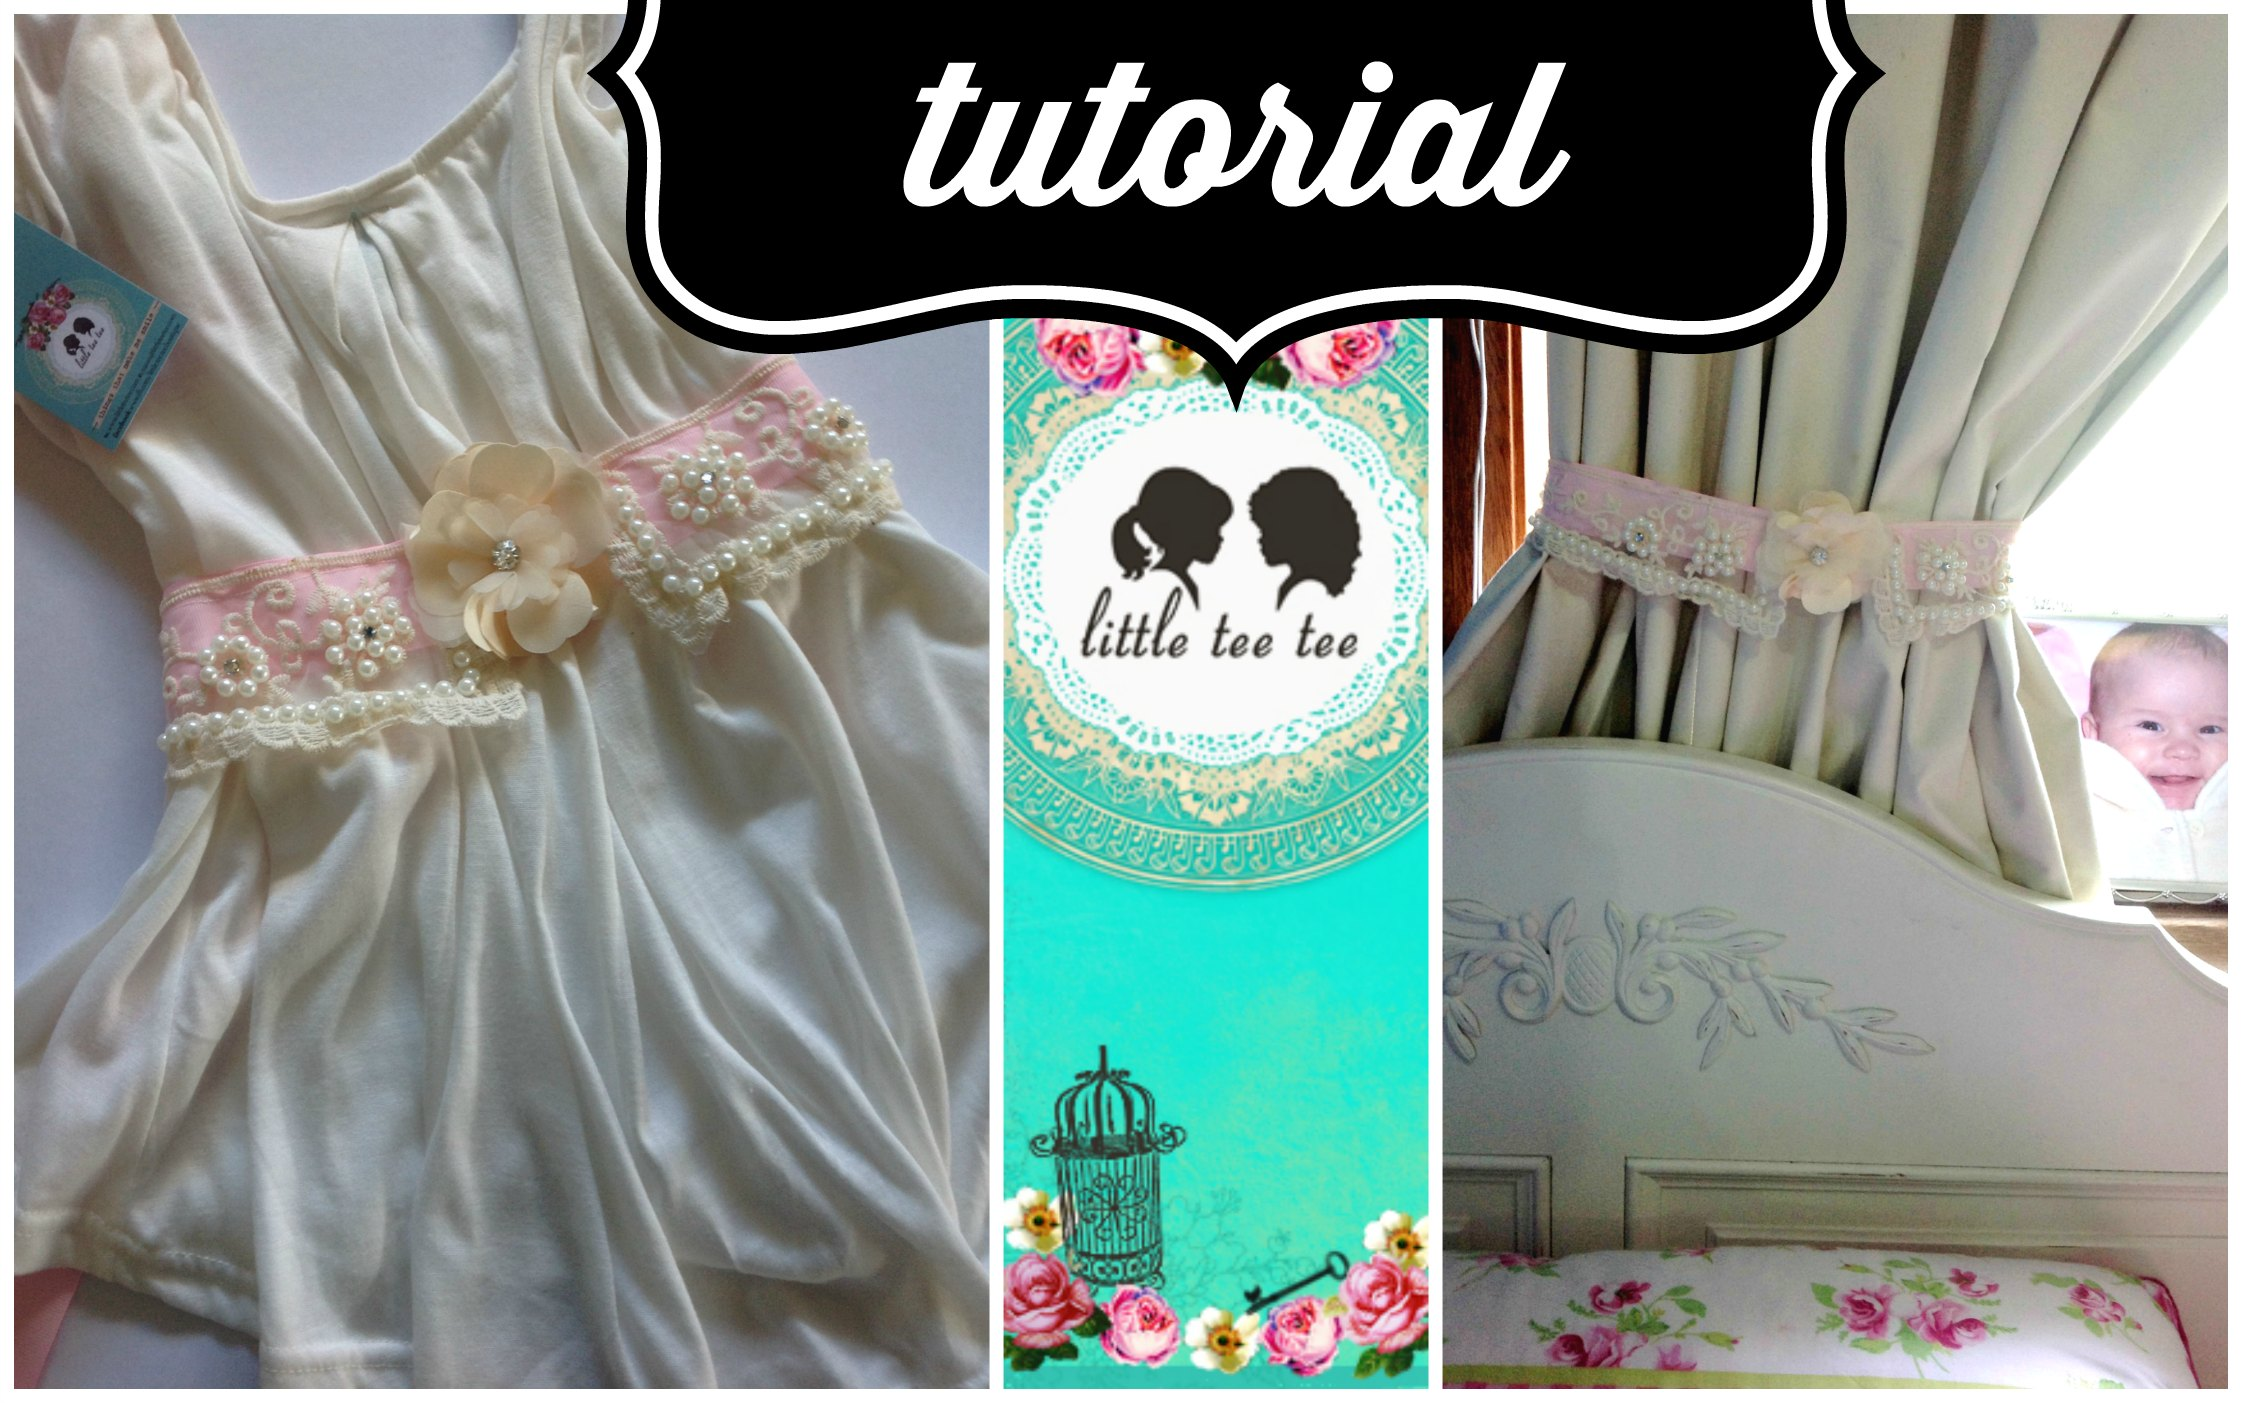 Tutorial: How to make a Shabby Chic Sash